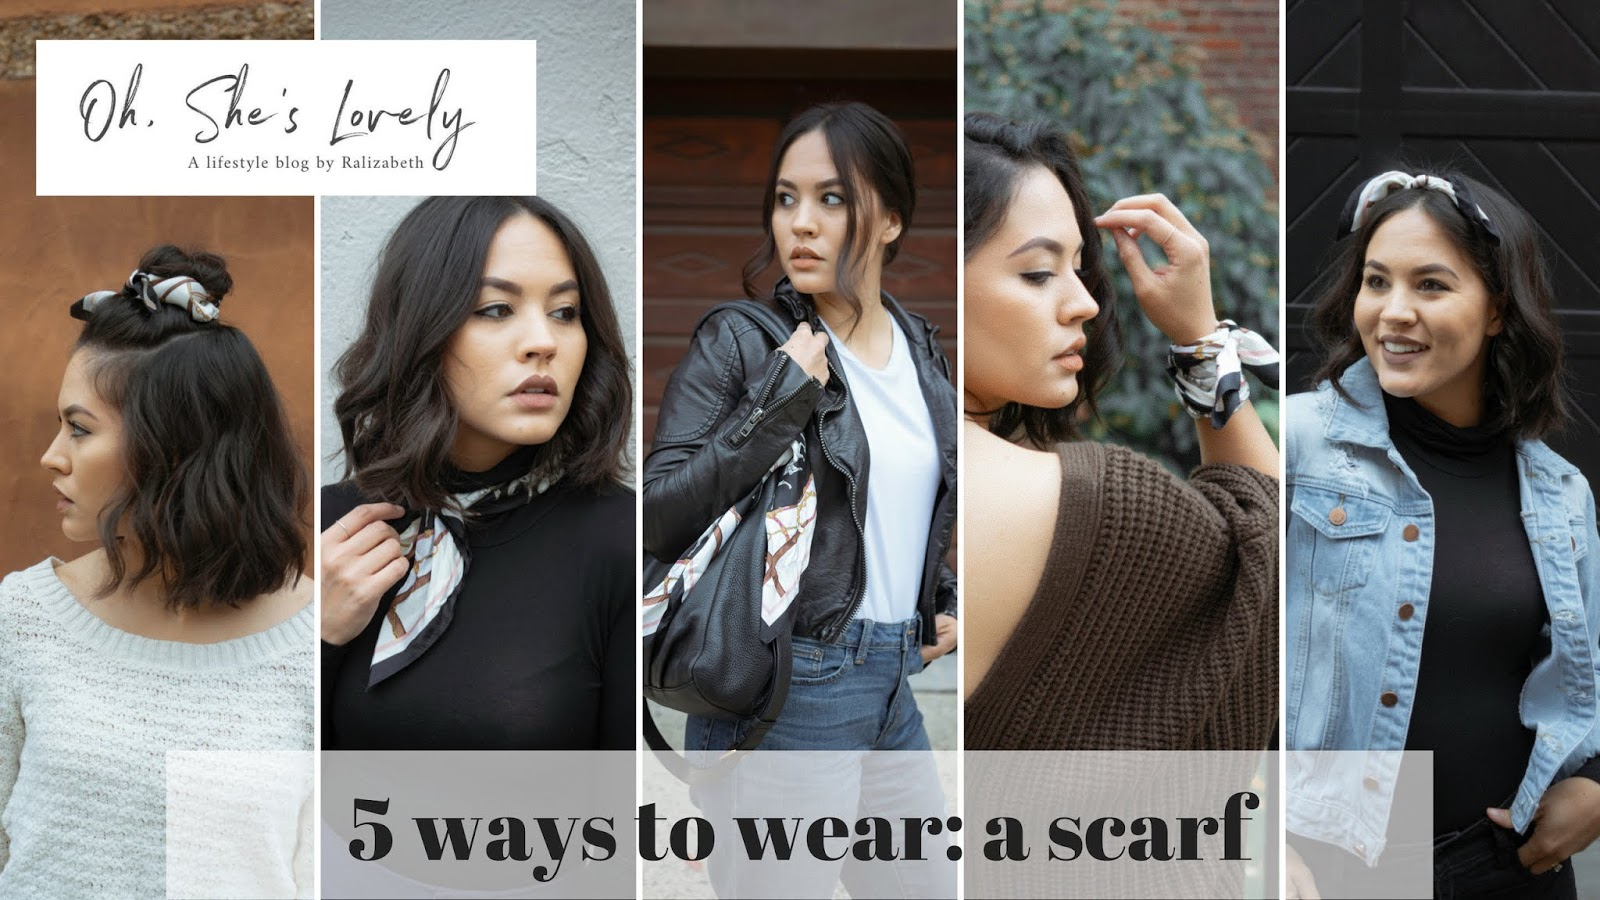 e86a51cfd1639 the point of this 5 ways to wear series is to inspire myself. to help me  get out of my comfort zone and experiment with different styles that i  normally ...